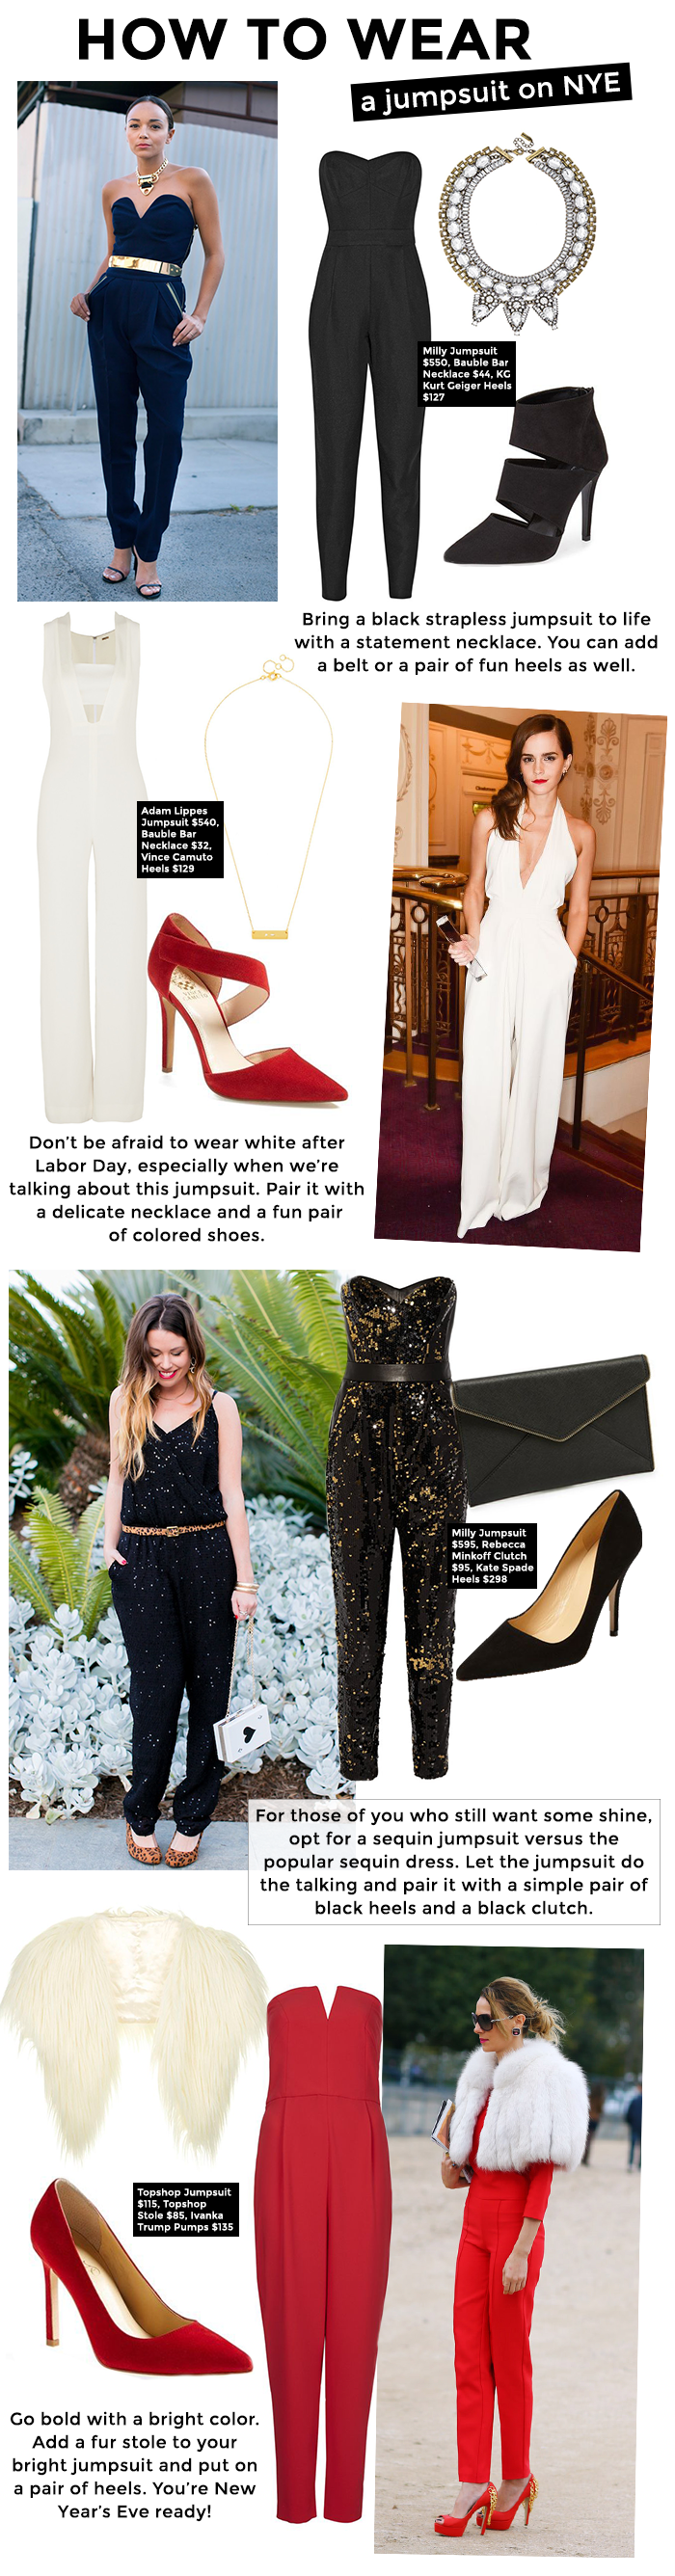 How-to-Wear-a-Jumpsuit-on-NYE